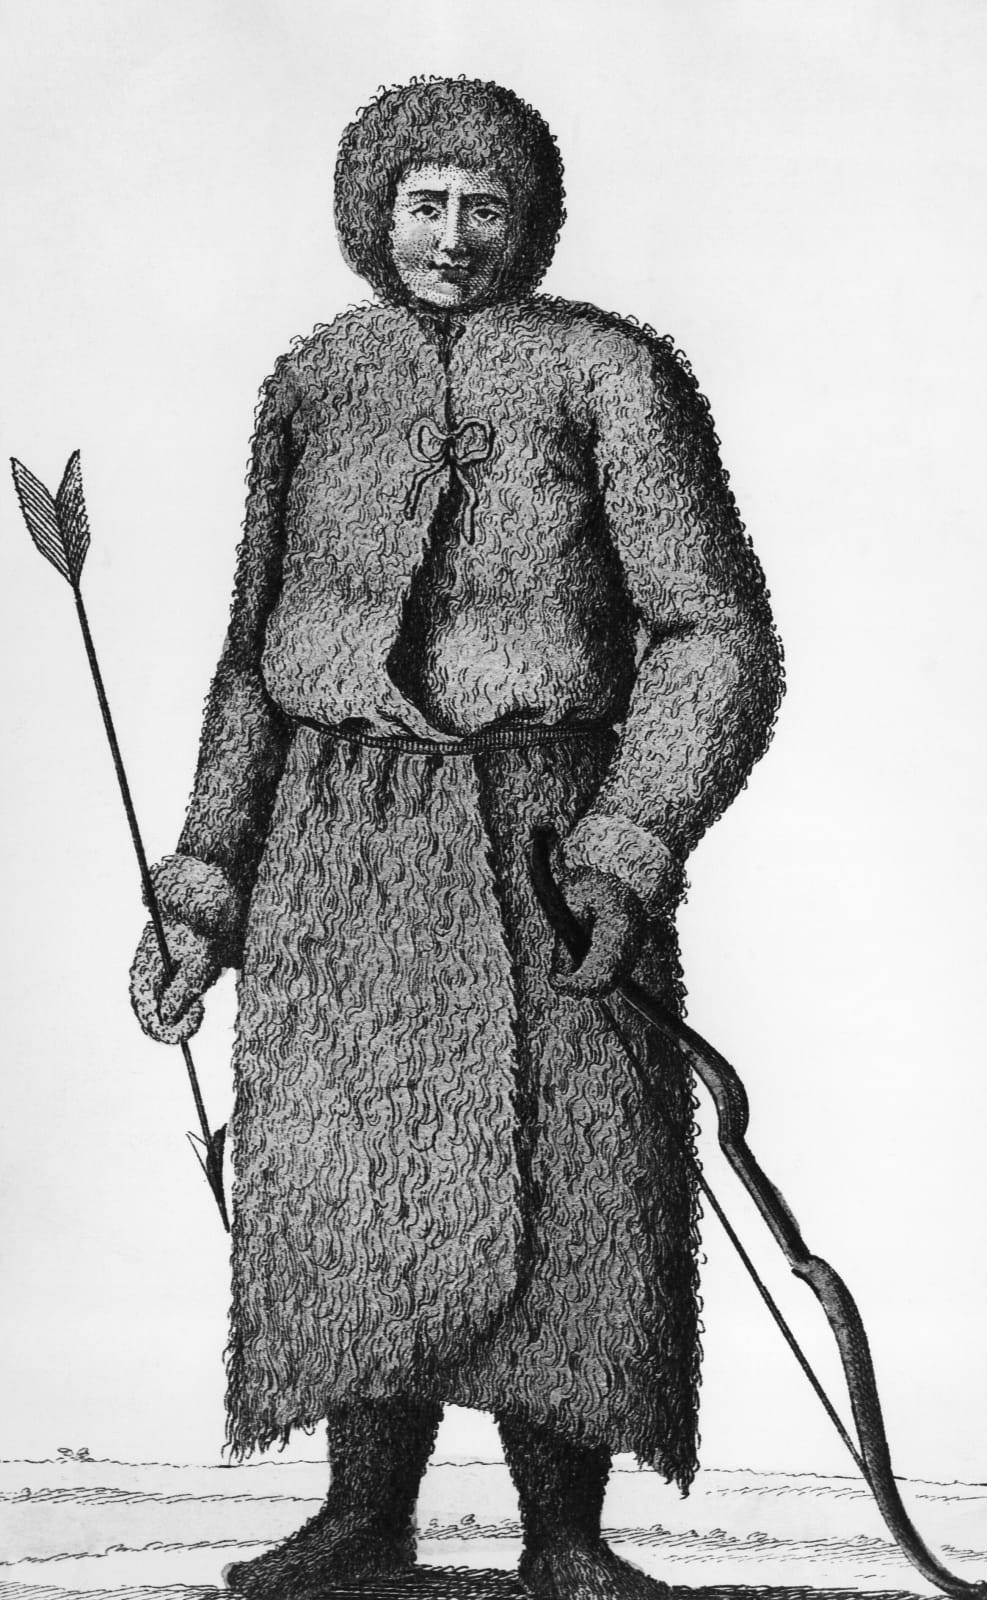 [Fig. 2] Inuk with a bow and arrow, Arctic, illustration from A chronological history of voyages into the Arctic Regions, by John Barrow, Milan, Sonzogno, 1820.